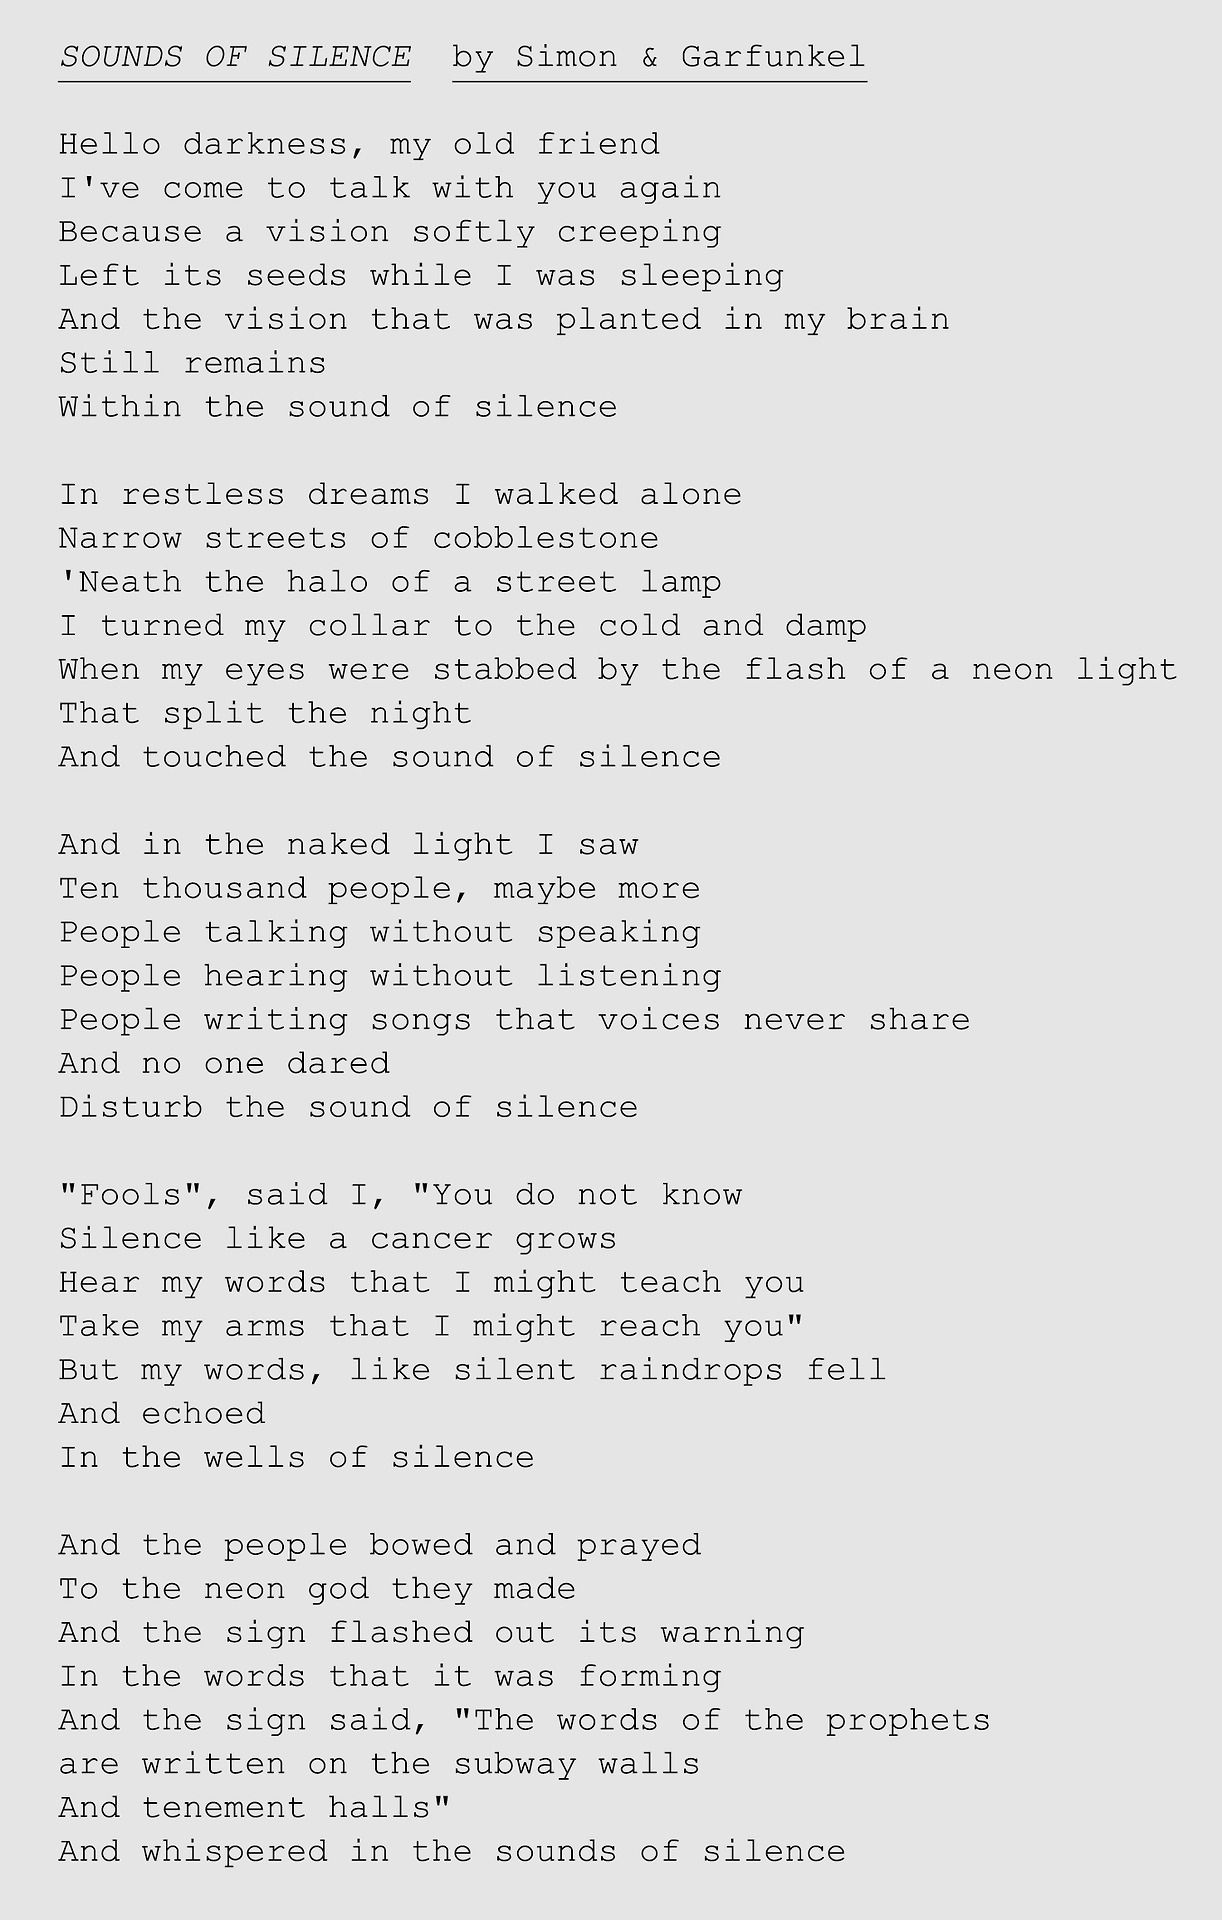 text sound of silence